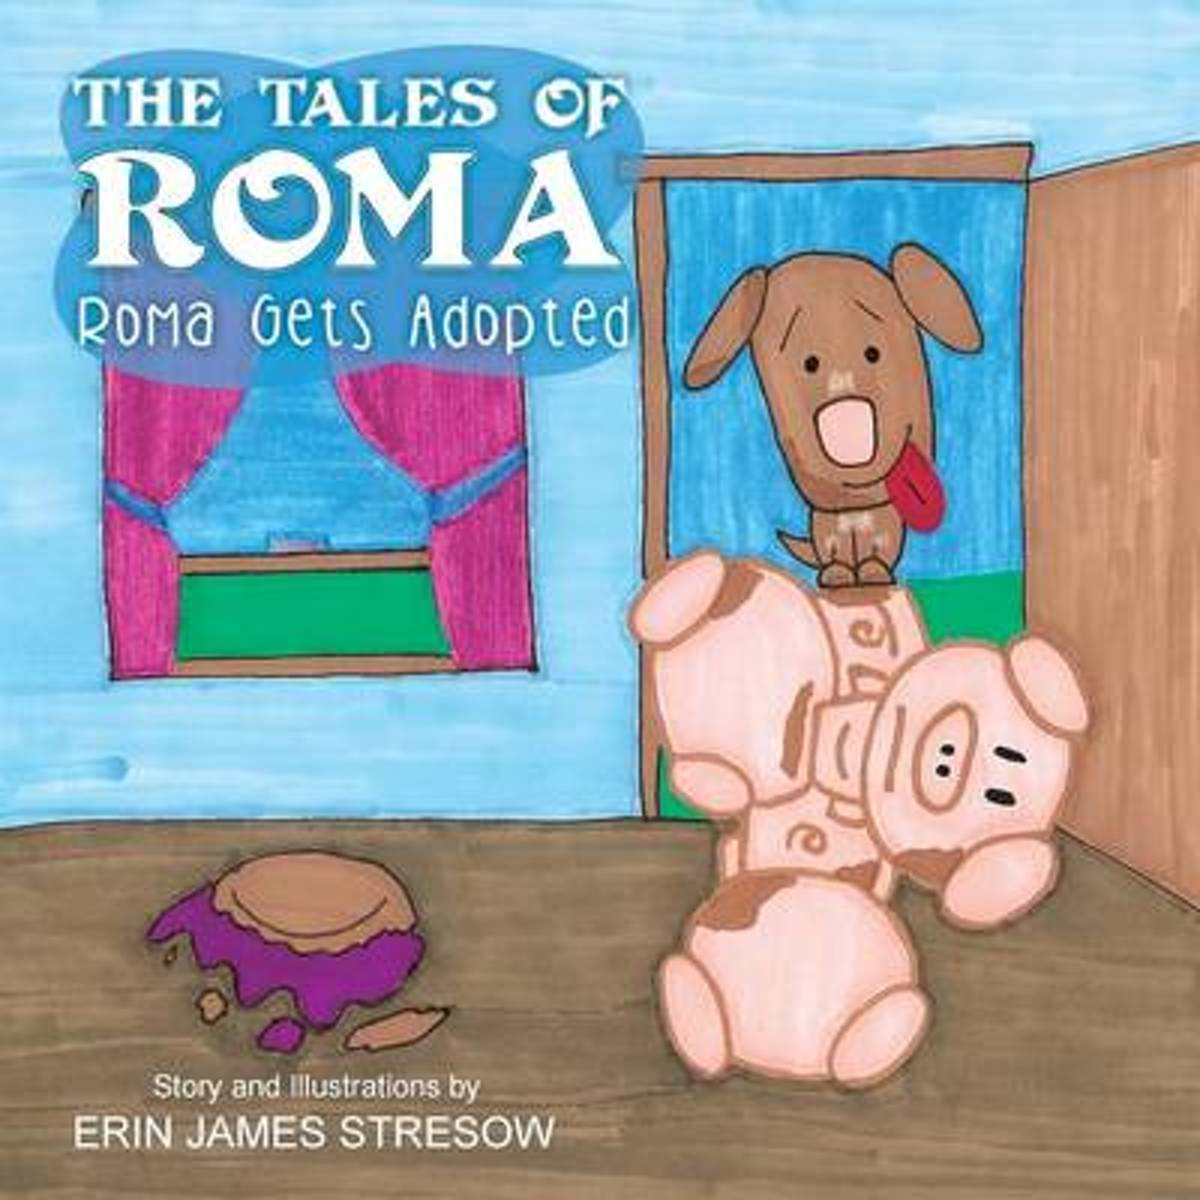 The Tales of Roma